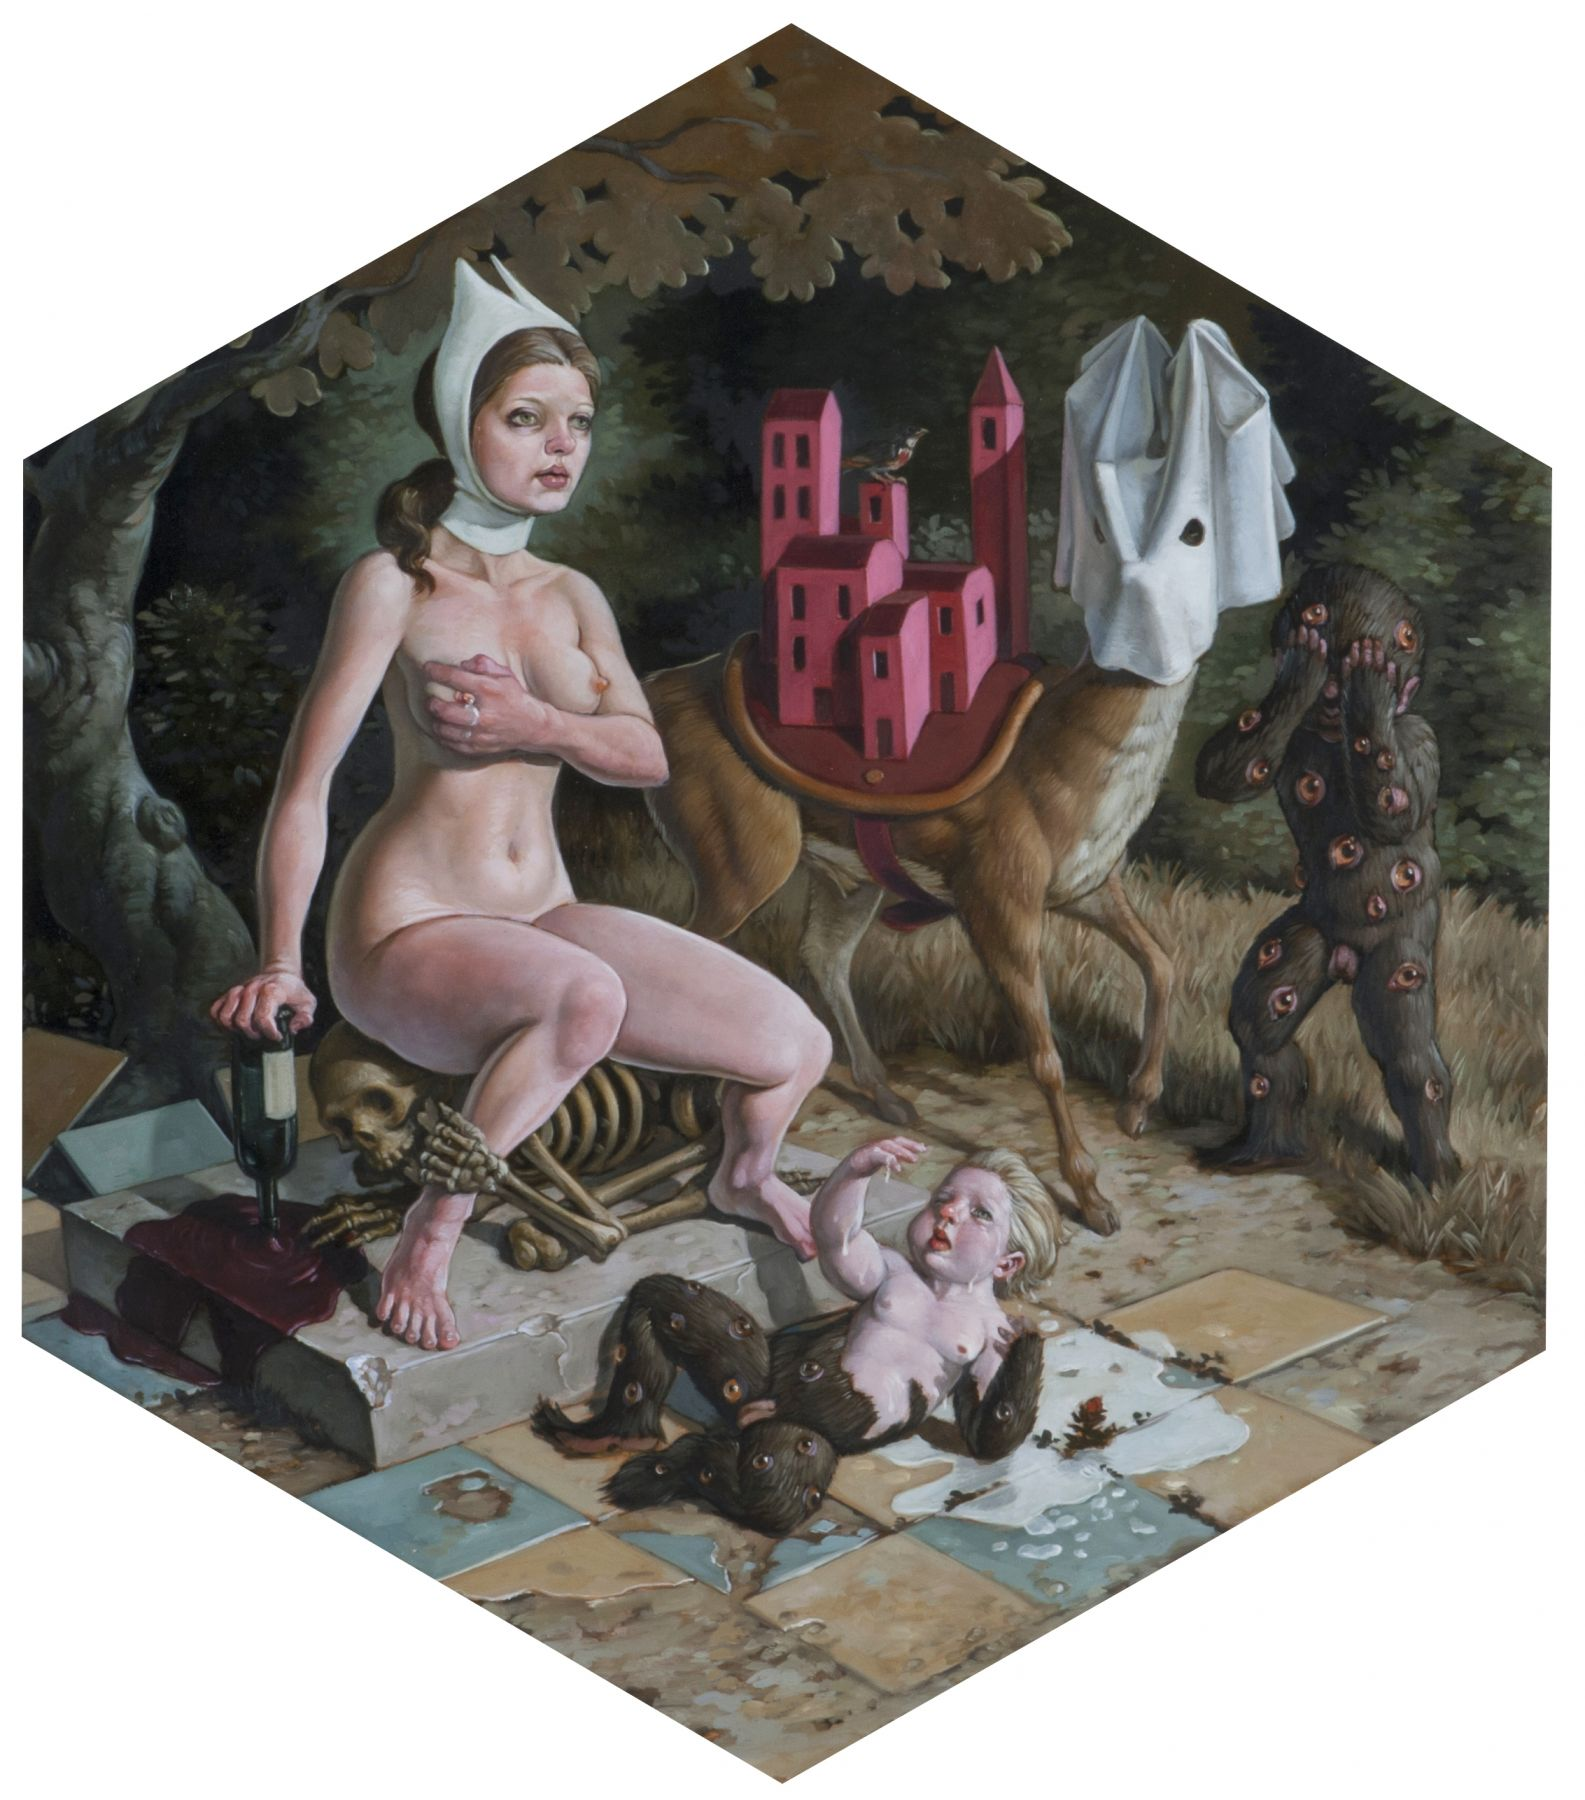 ERIK THOR SANDBERG  They Are Beasts  2017, oil on wood panel, 13 x 11 inches